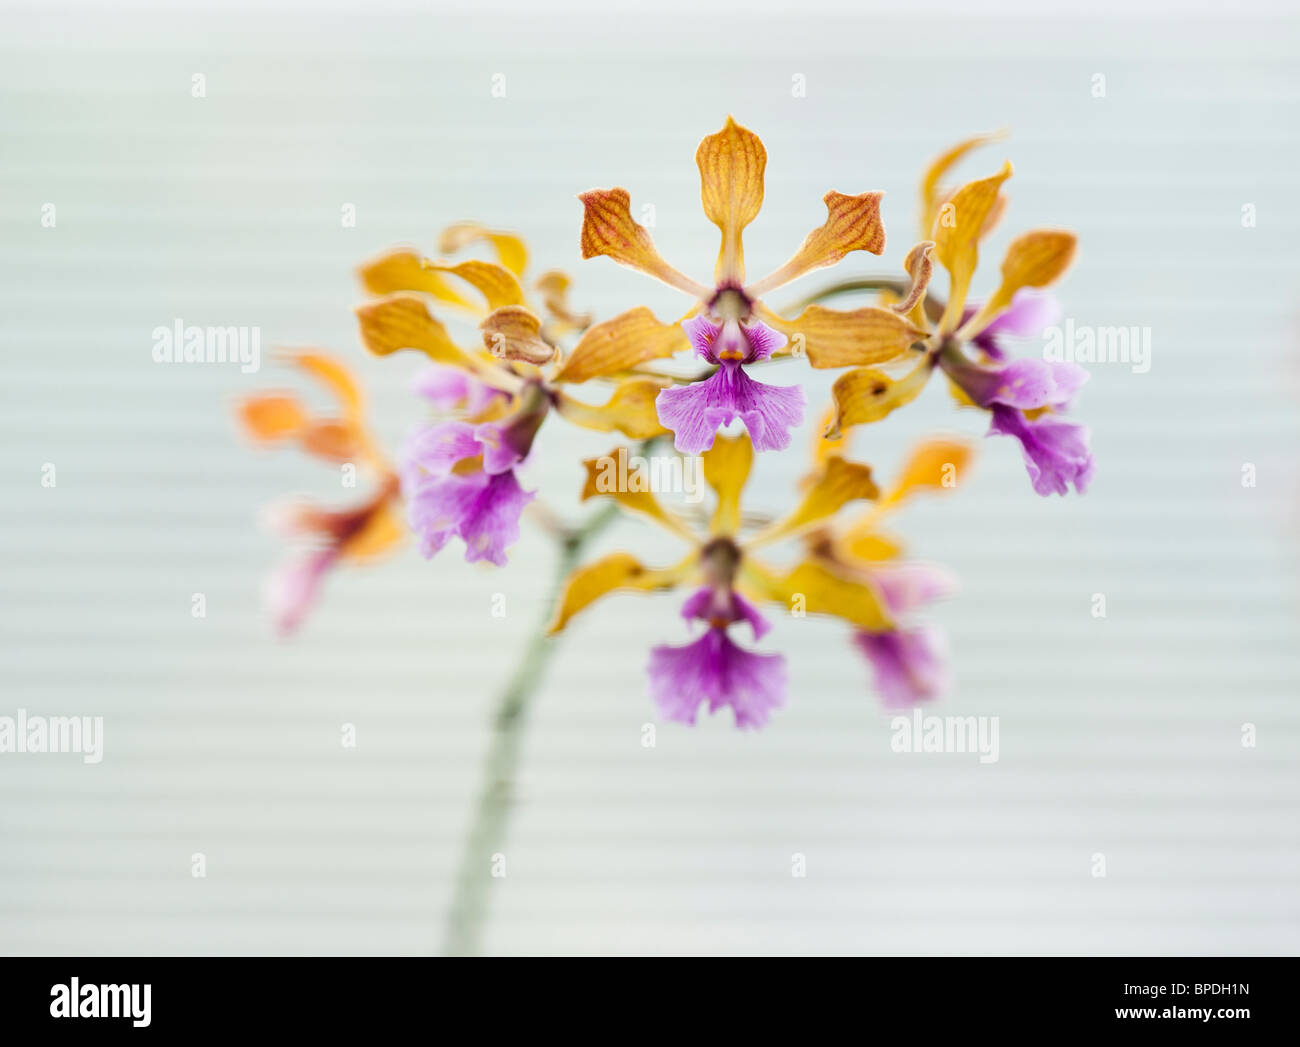 Encyclia orchid flowers against the white background of a window blind - Stock Image